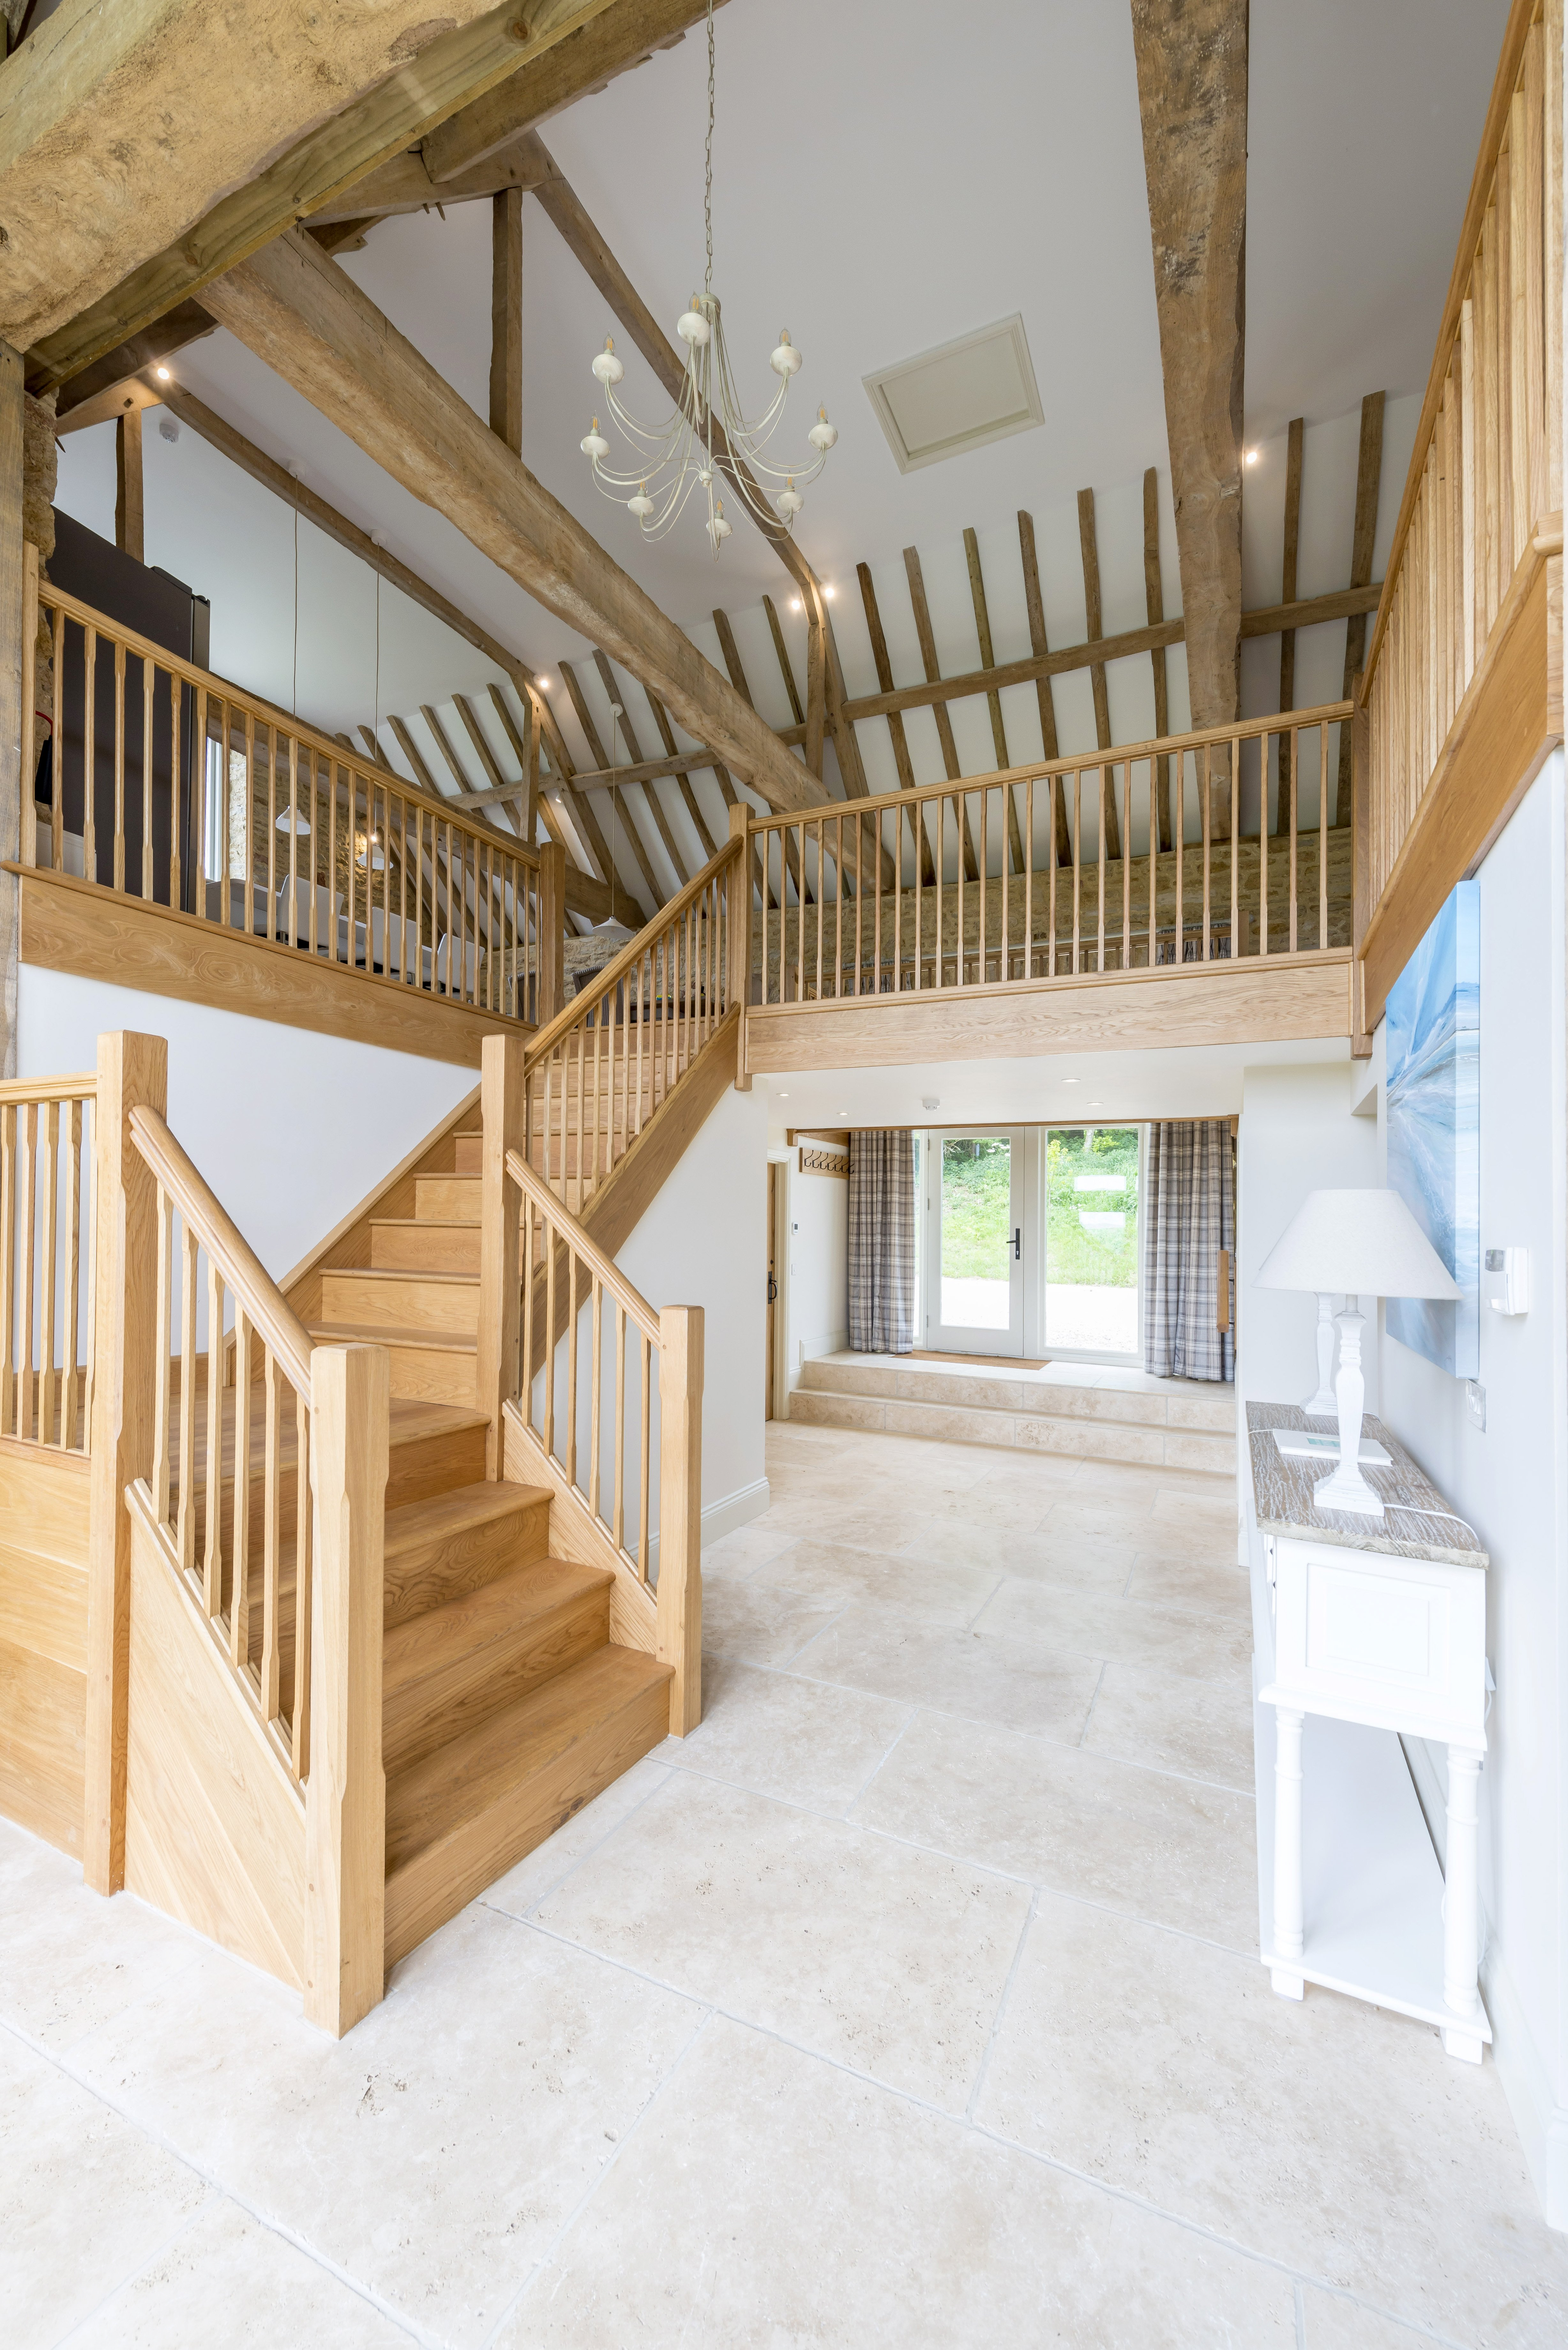 Merry Hill Barn Luxury Dorset Cottages